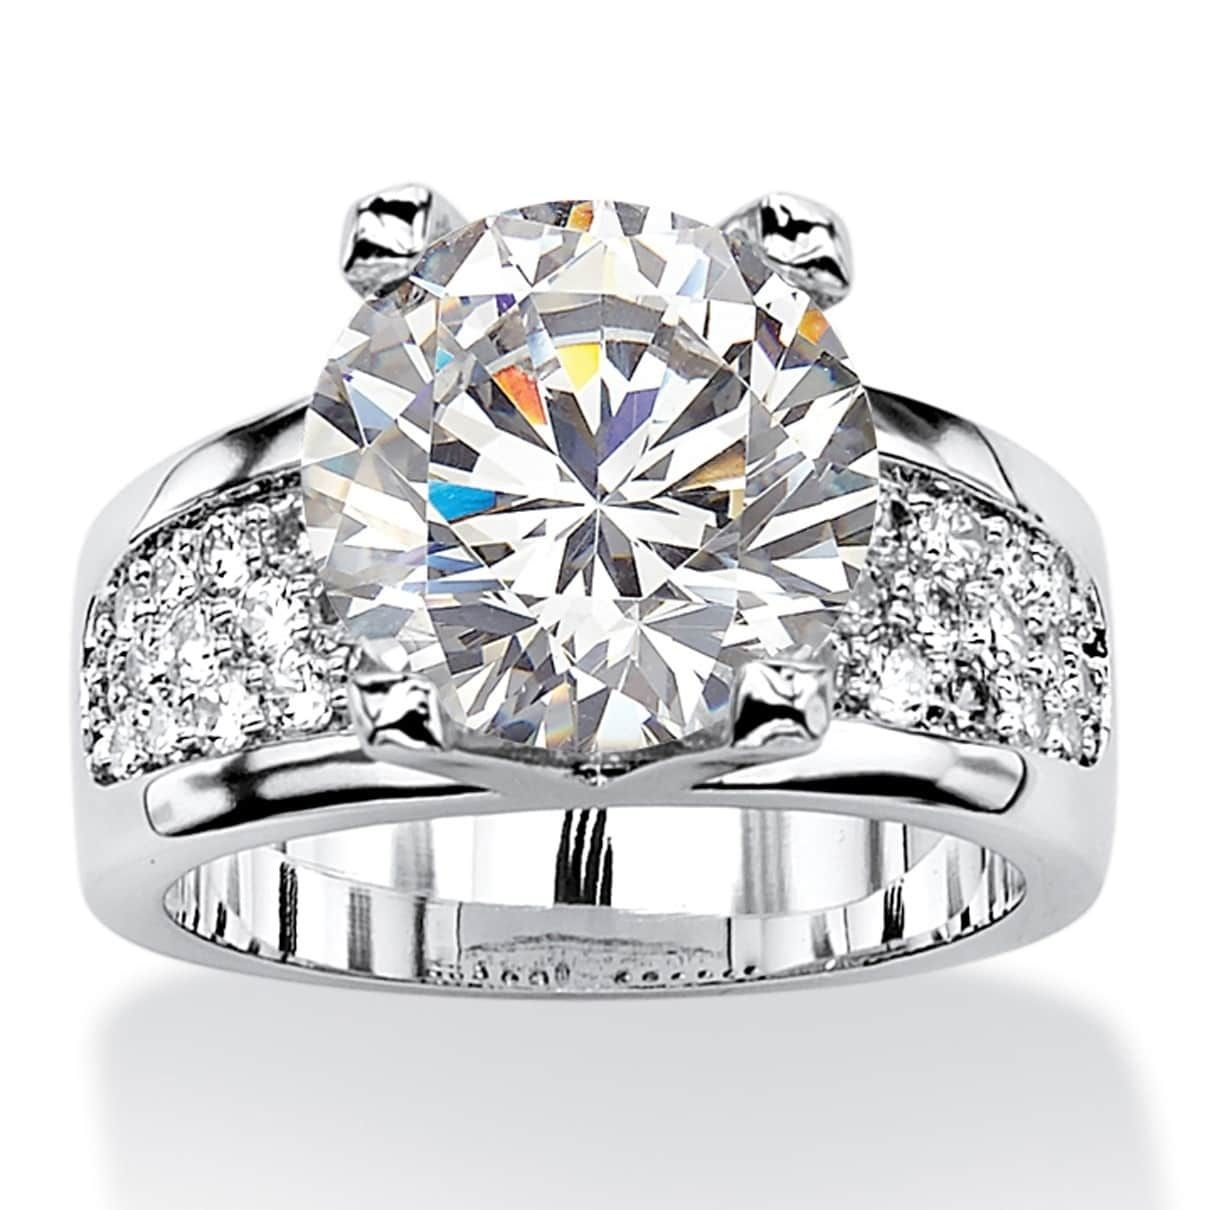 Overstock Com Online Shopping Bedding Furniture Electronics Jewelry Clothing More Silver Engagement Rings Cubic Zirconia Engagement Rings Cubic Zirconia Jewelry